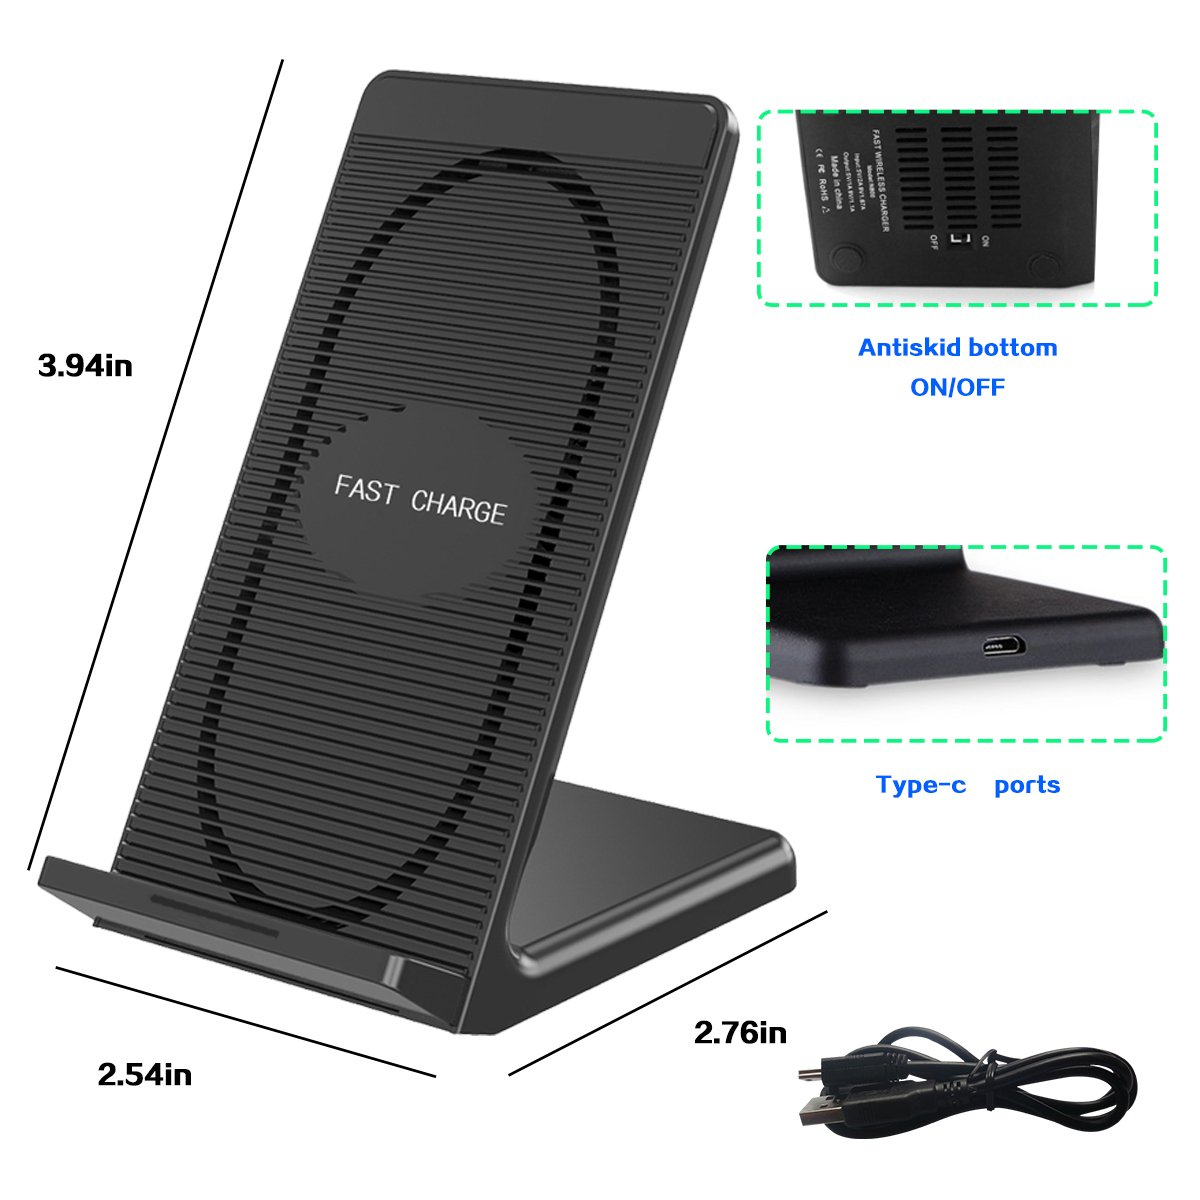 S8 Plus S7 Edge ltd szzccc-99 Fast Wireless Charger,QI Fast/Wireless/Charging Pad Stand Built-in Cooling Fan for iPhone X,iPhone 8,iPhone 8 Plus and Samsung Galaxy Note 8 S8 S6 Edge Plus S7 Note5 Shenzhen faith industrial Co